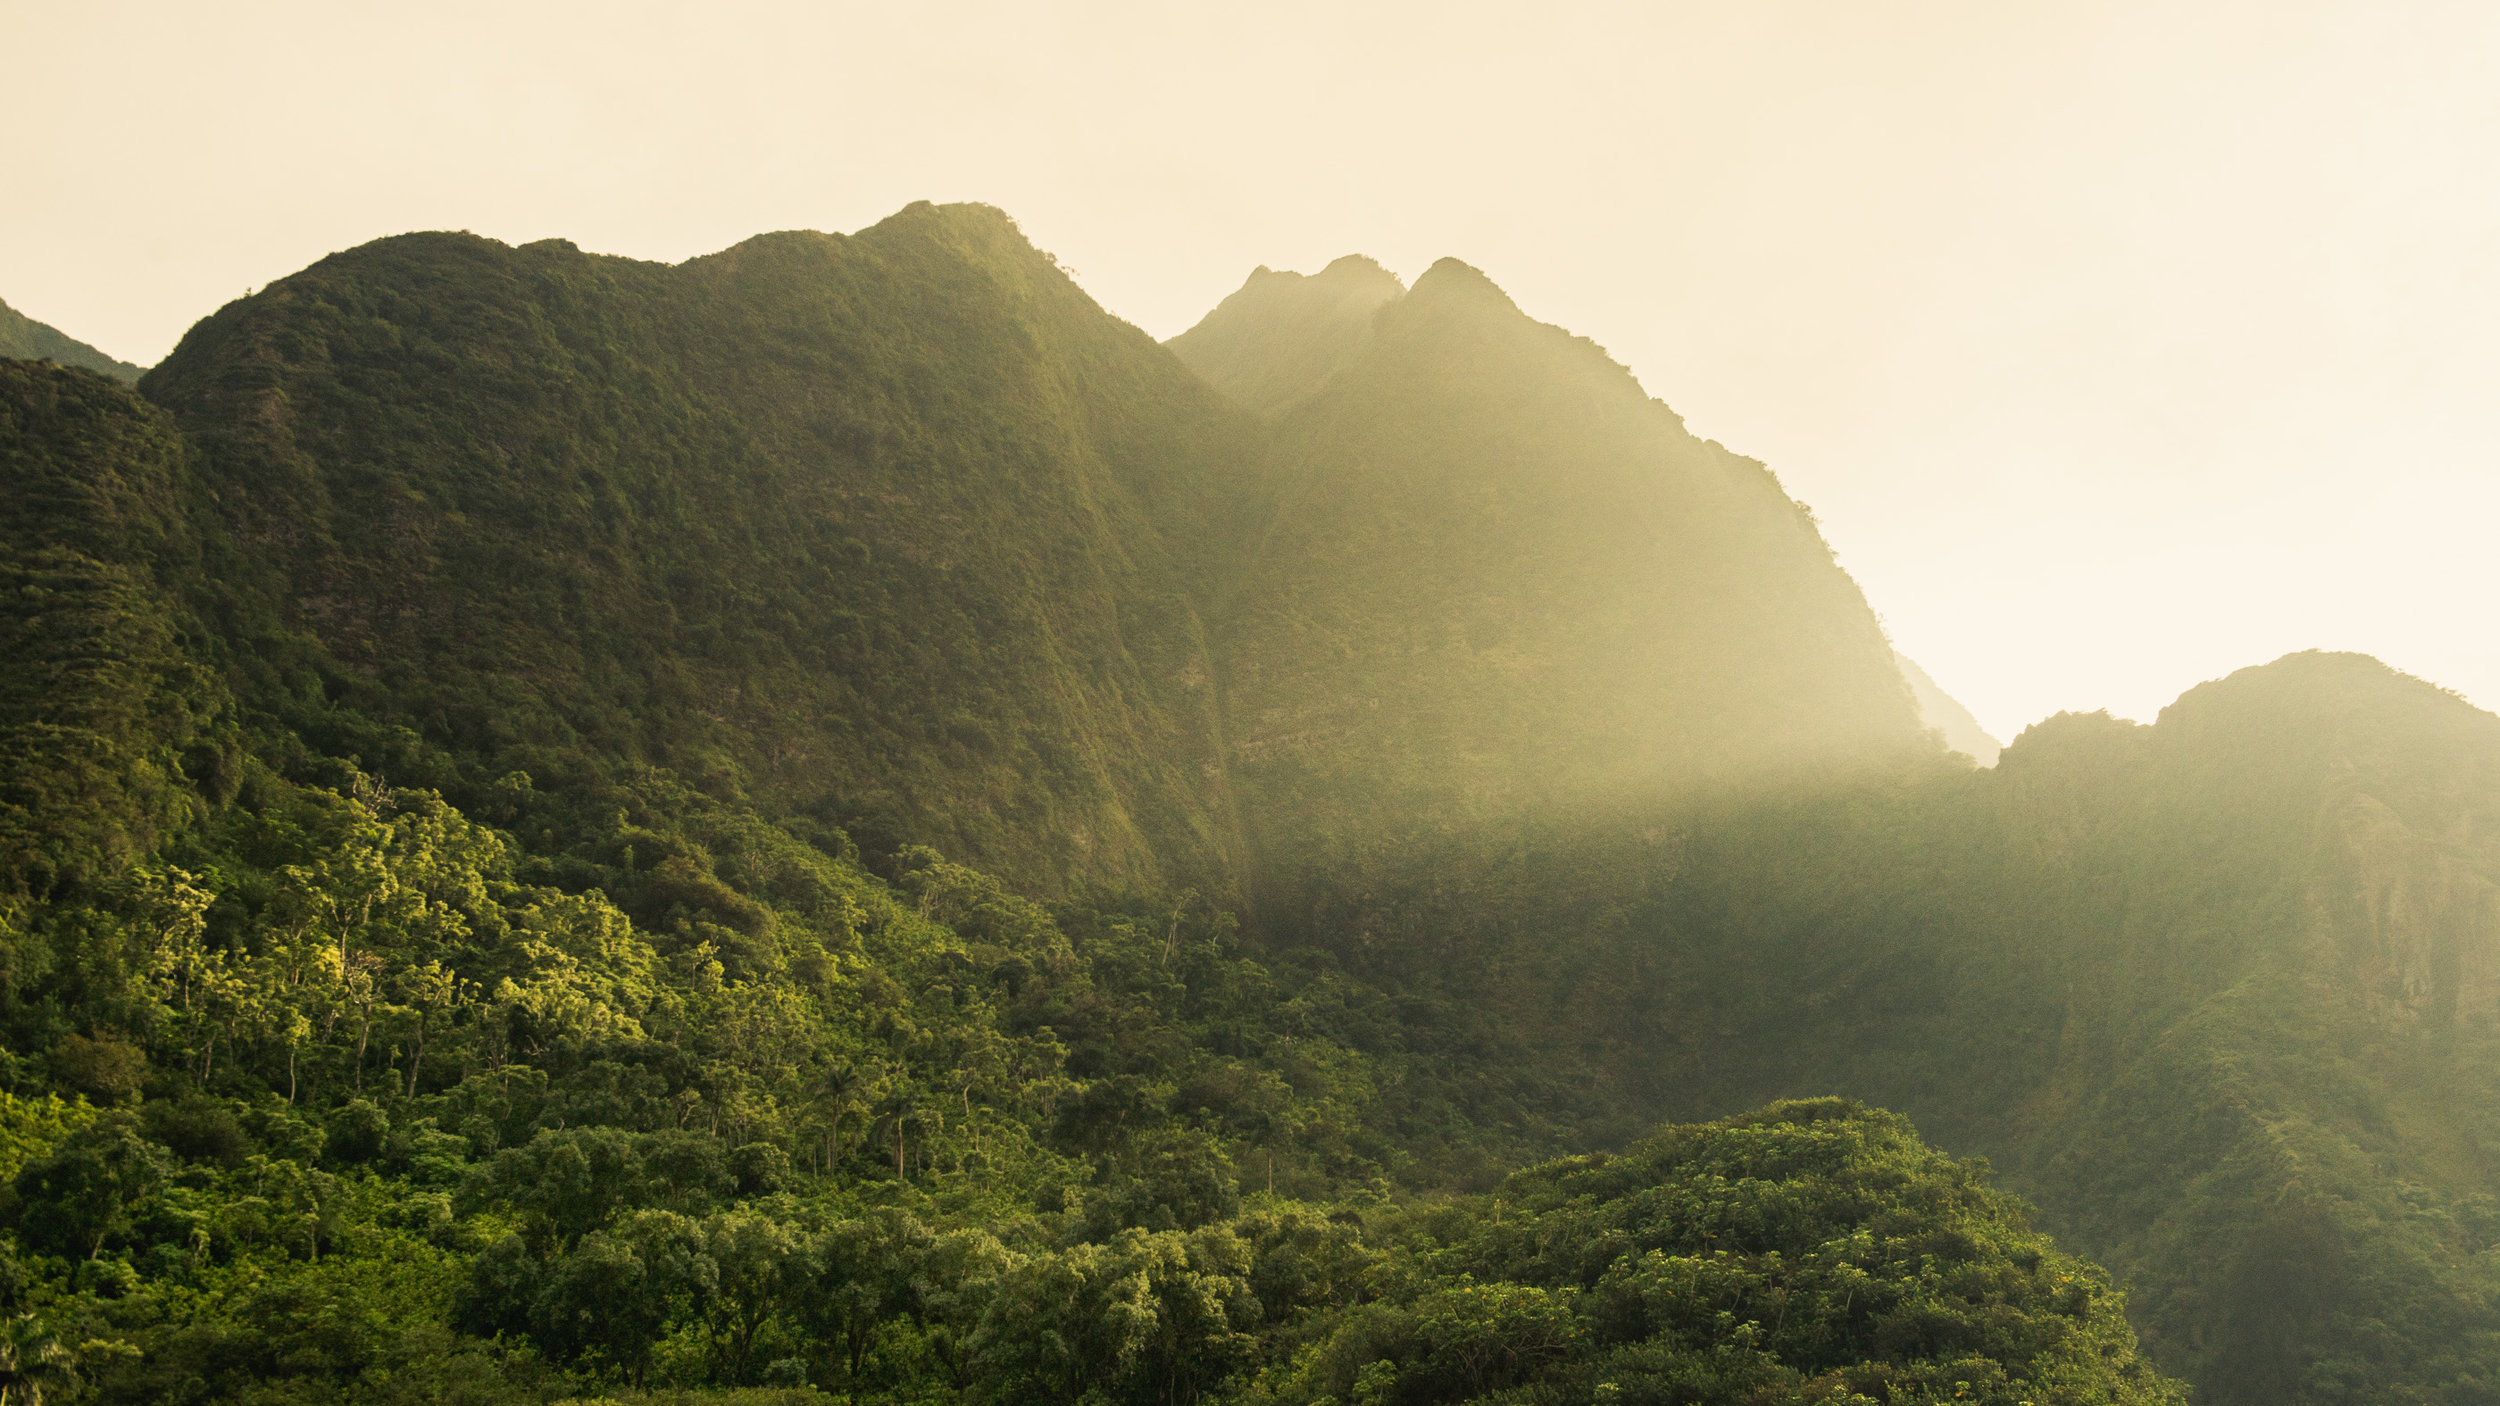 Hawaii Landscapes – Travel & Tourism Photographer California